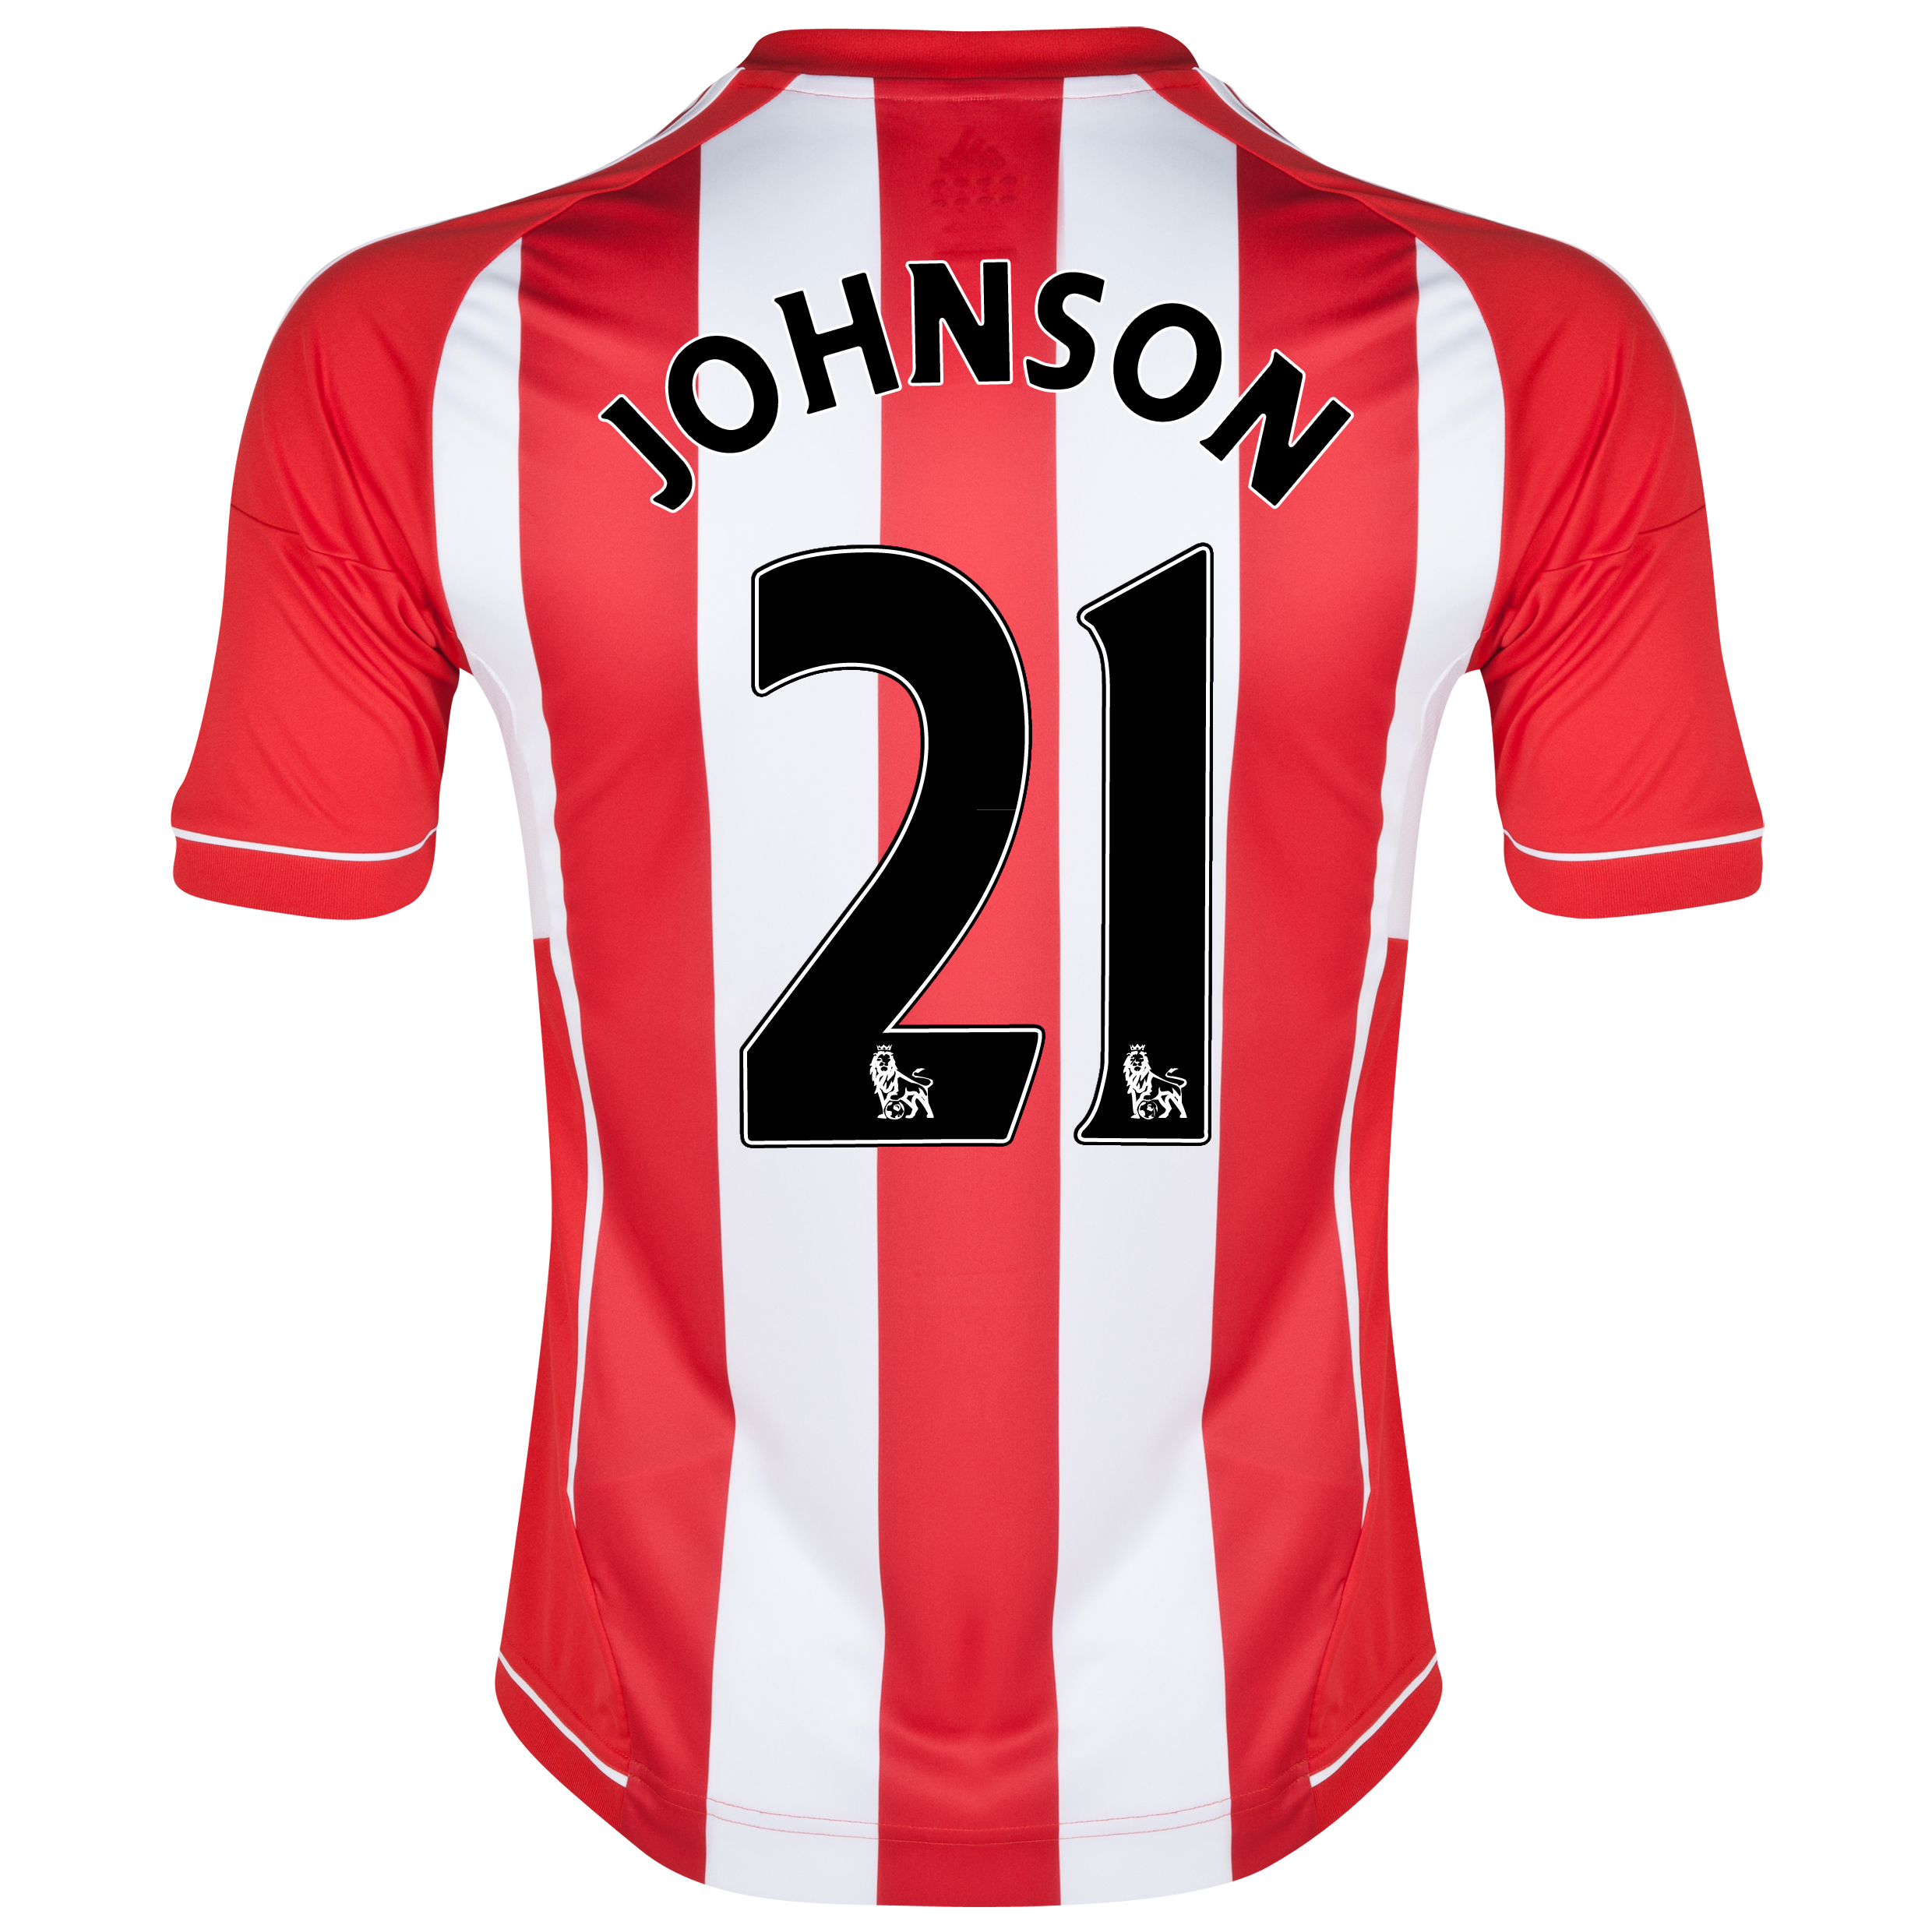 Sunderland Home Shirt 2012/13 with Johnson 21 printing